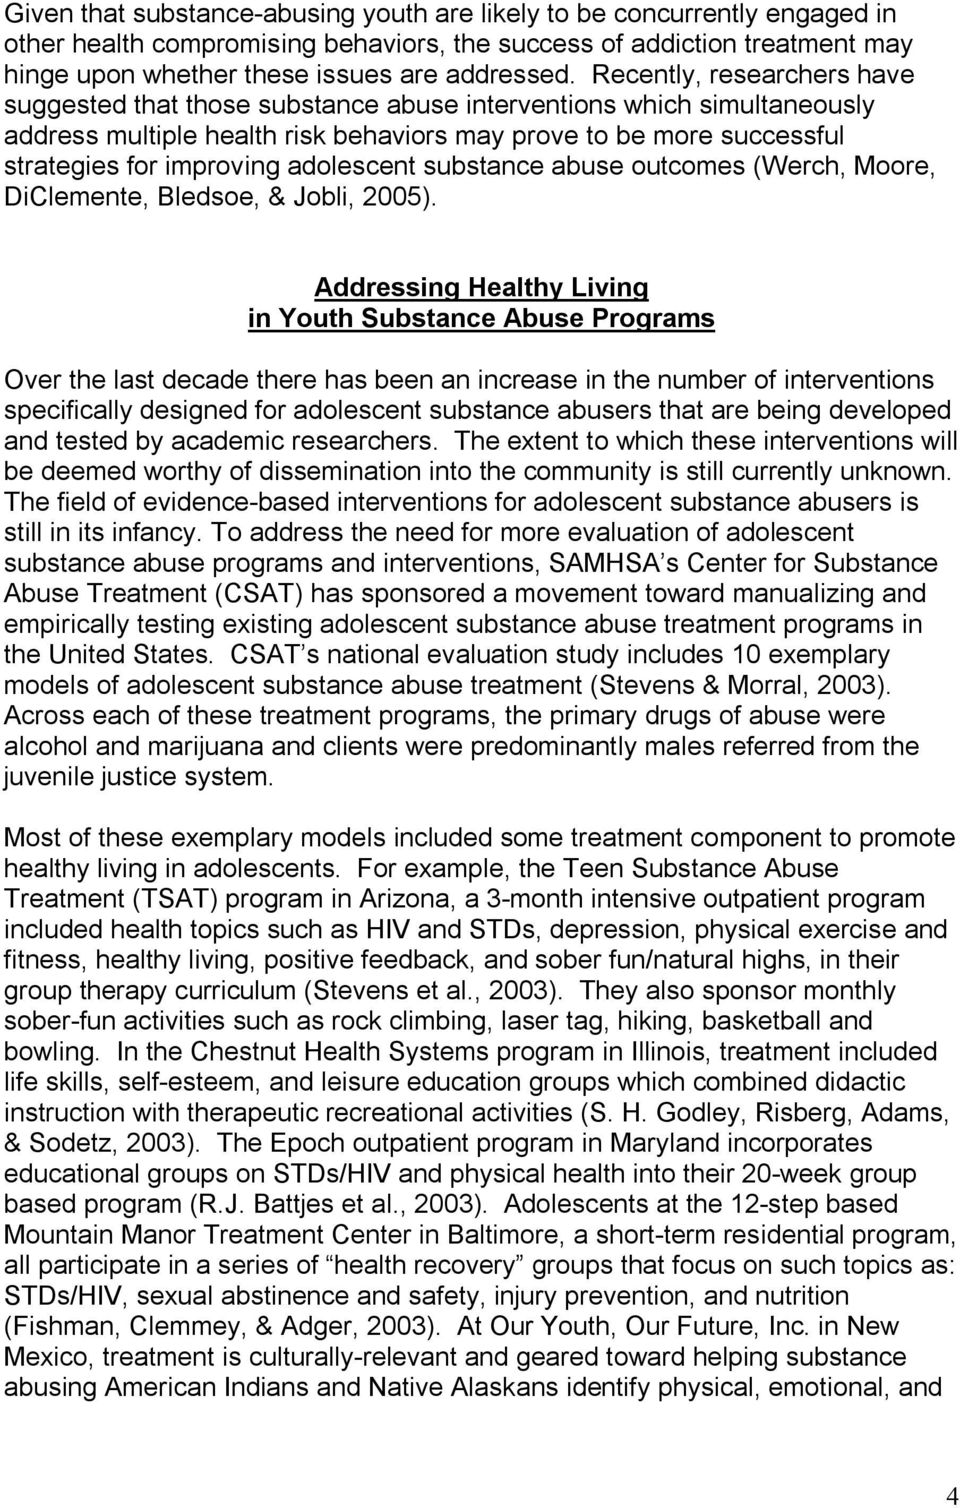 adolescent substance abuse outcomes (Werch, Moore, DiClemente, Bledsoe, & Jobli, 2005).